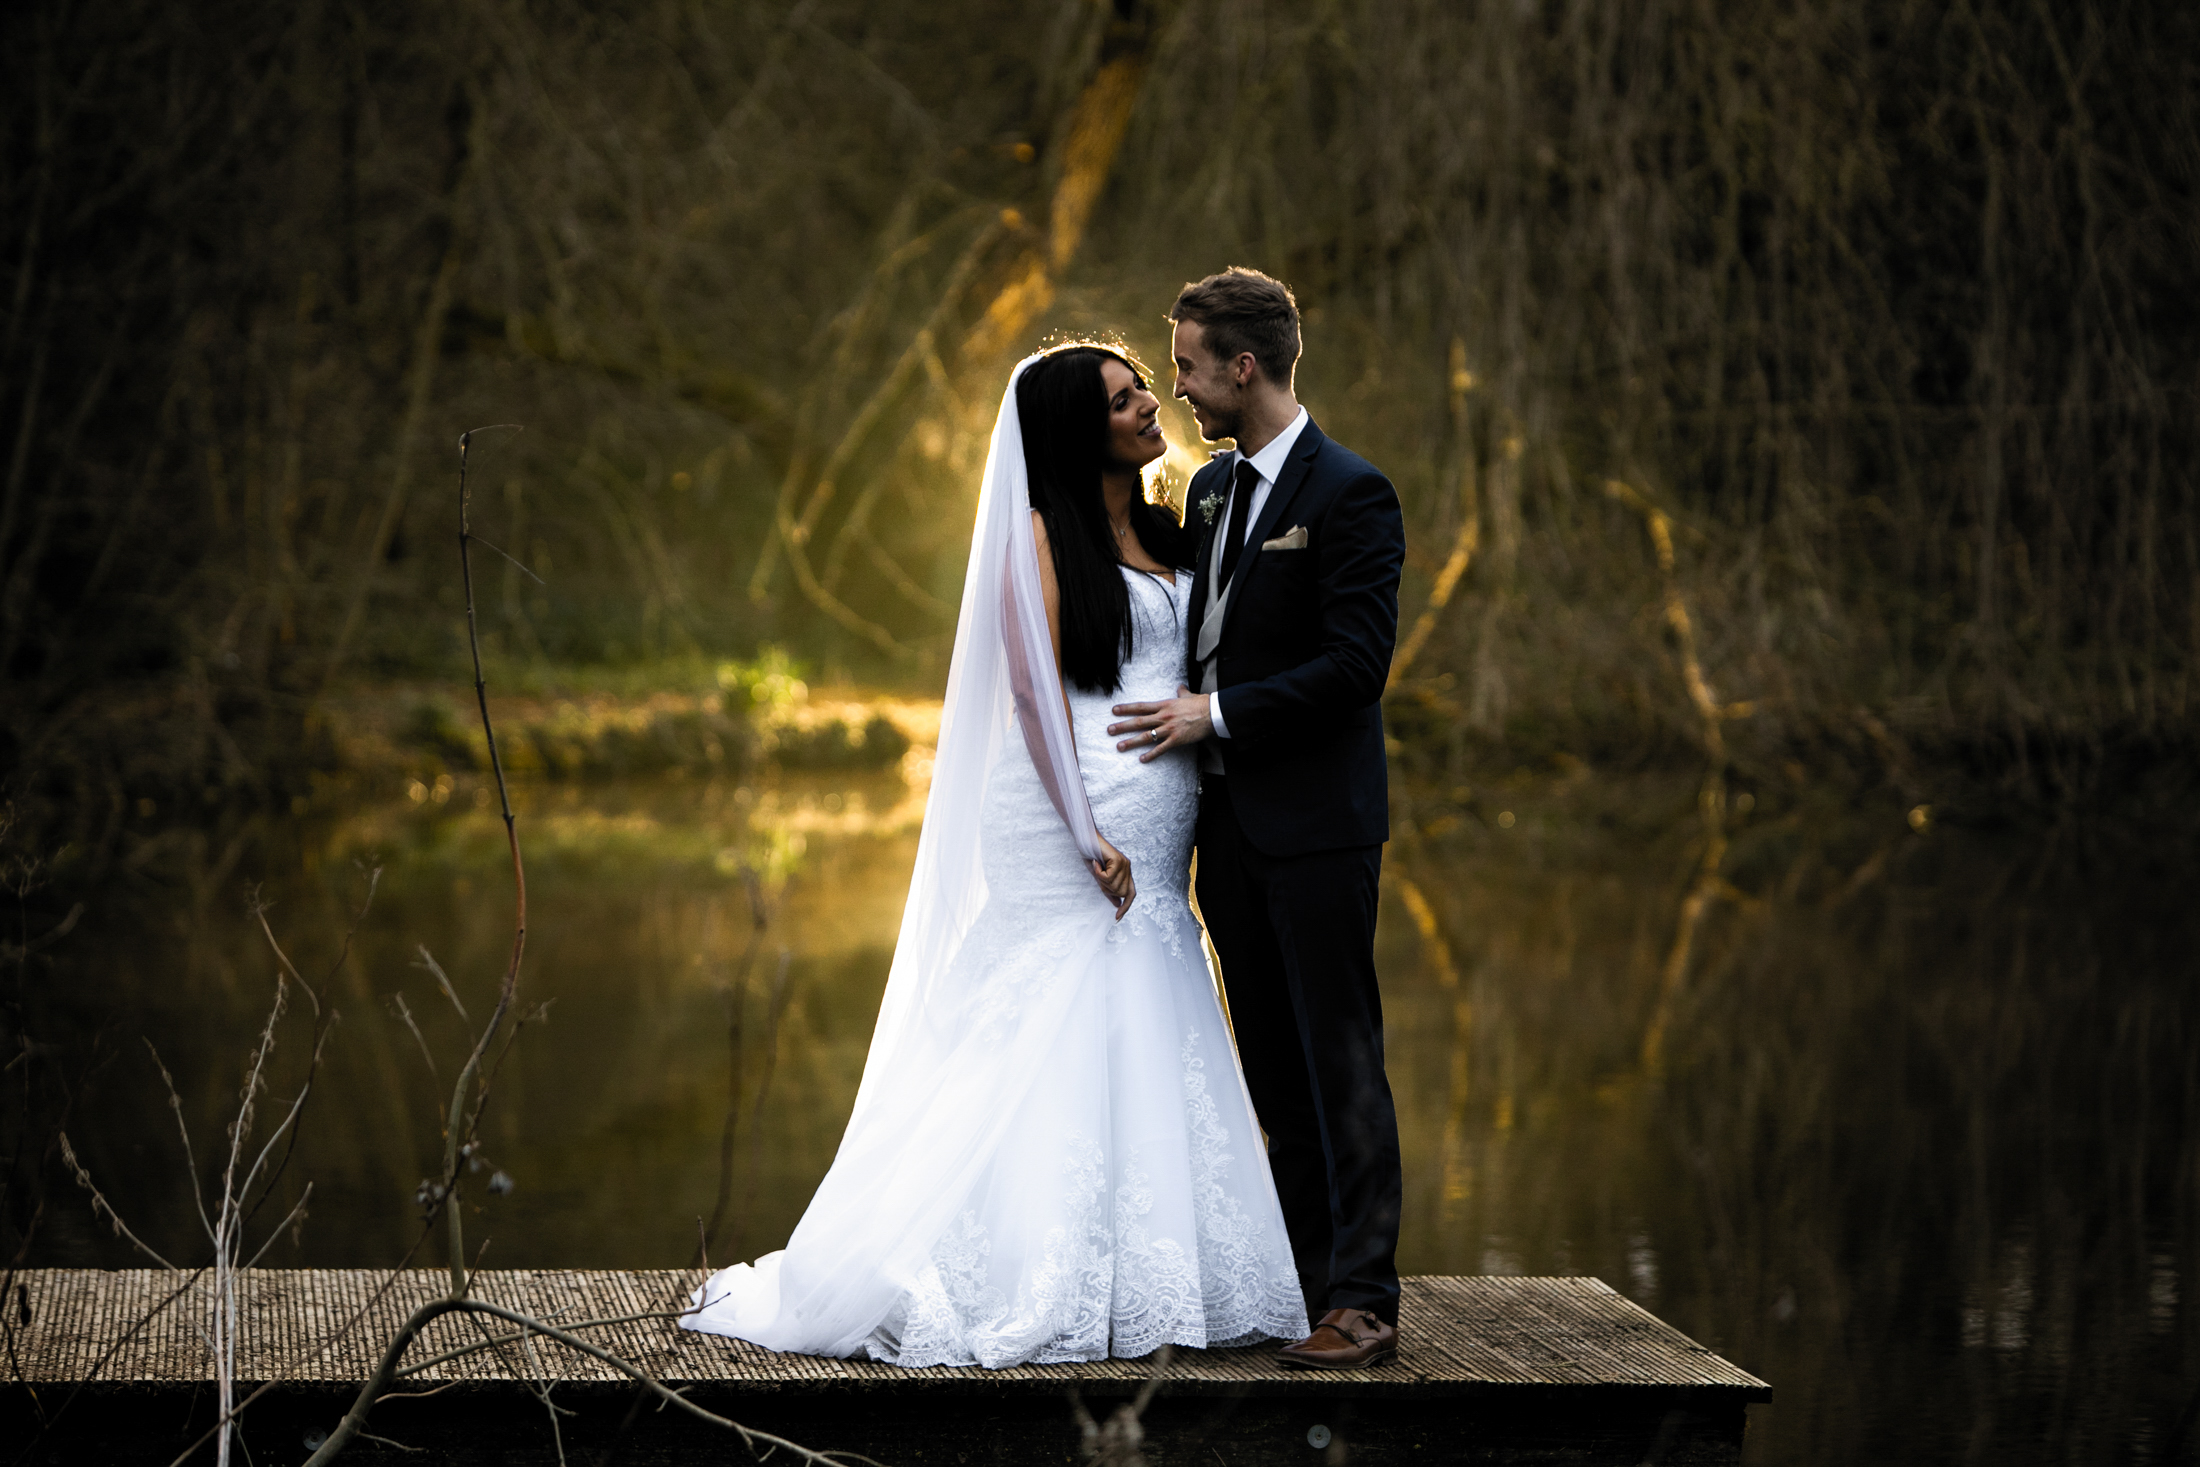 doxford barns wedding photos-98.jpg